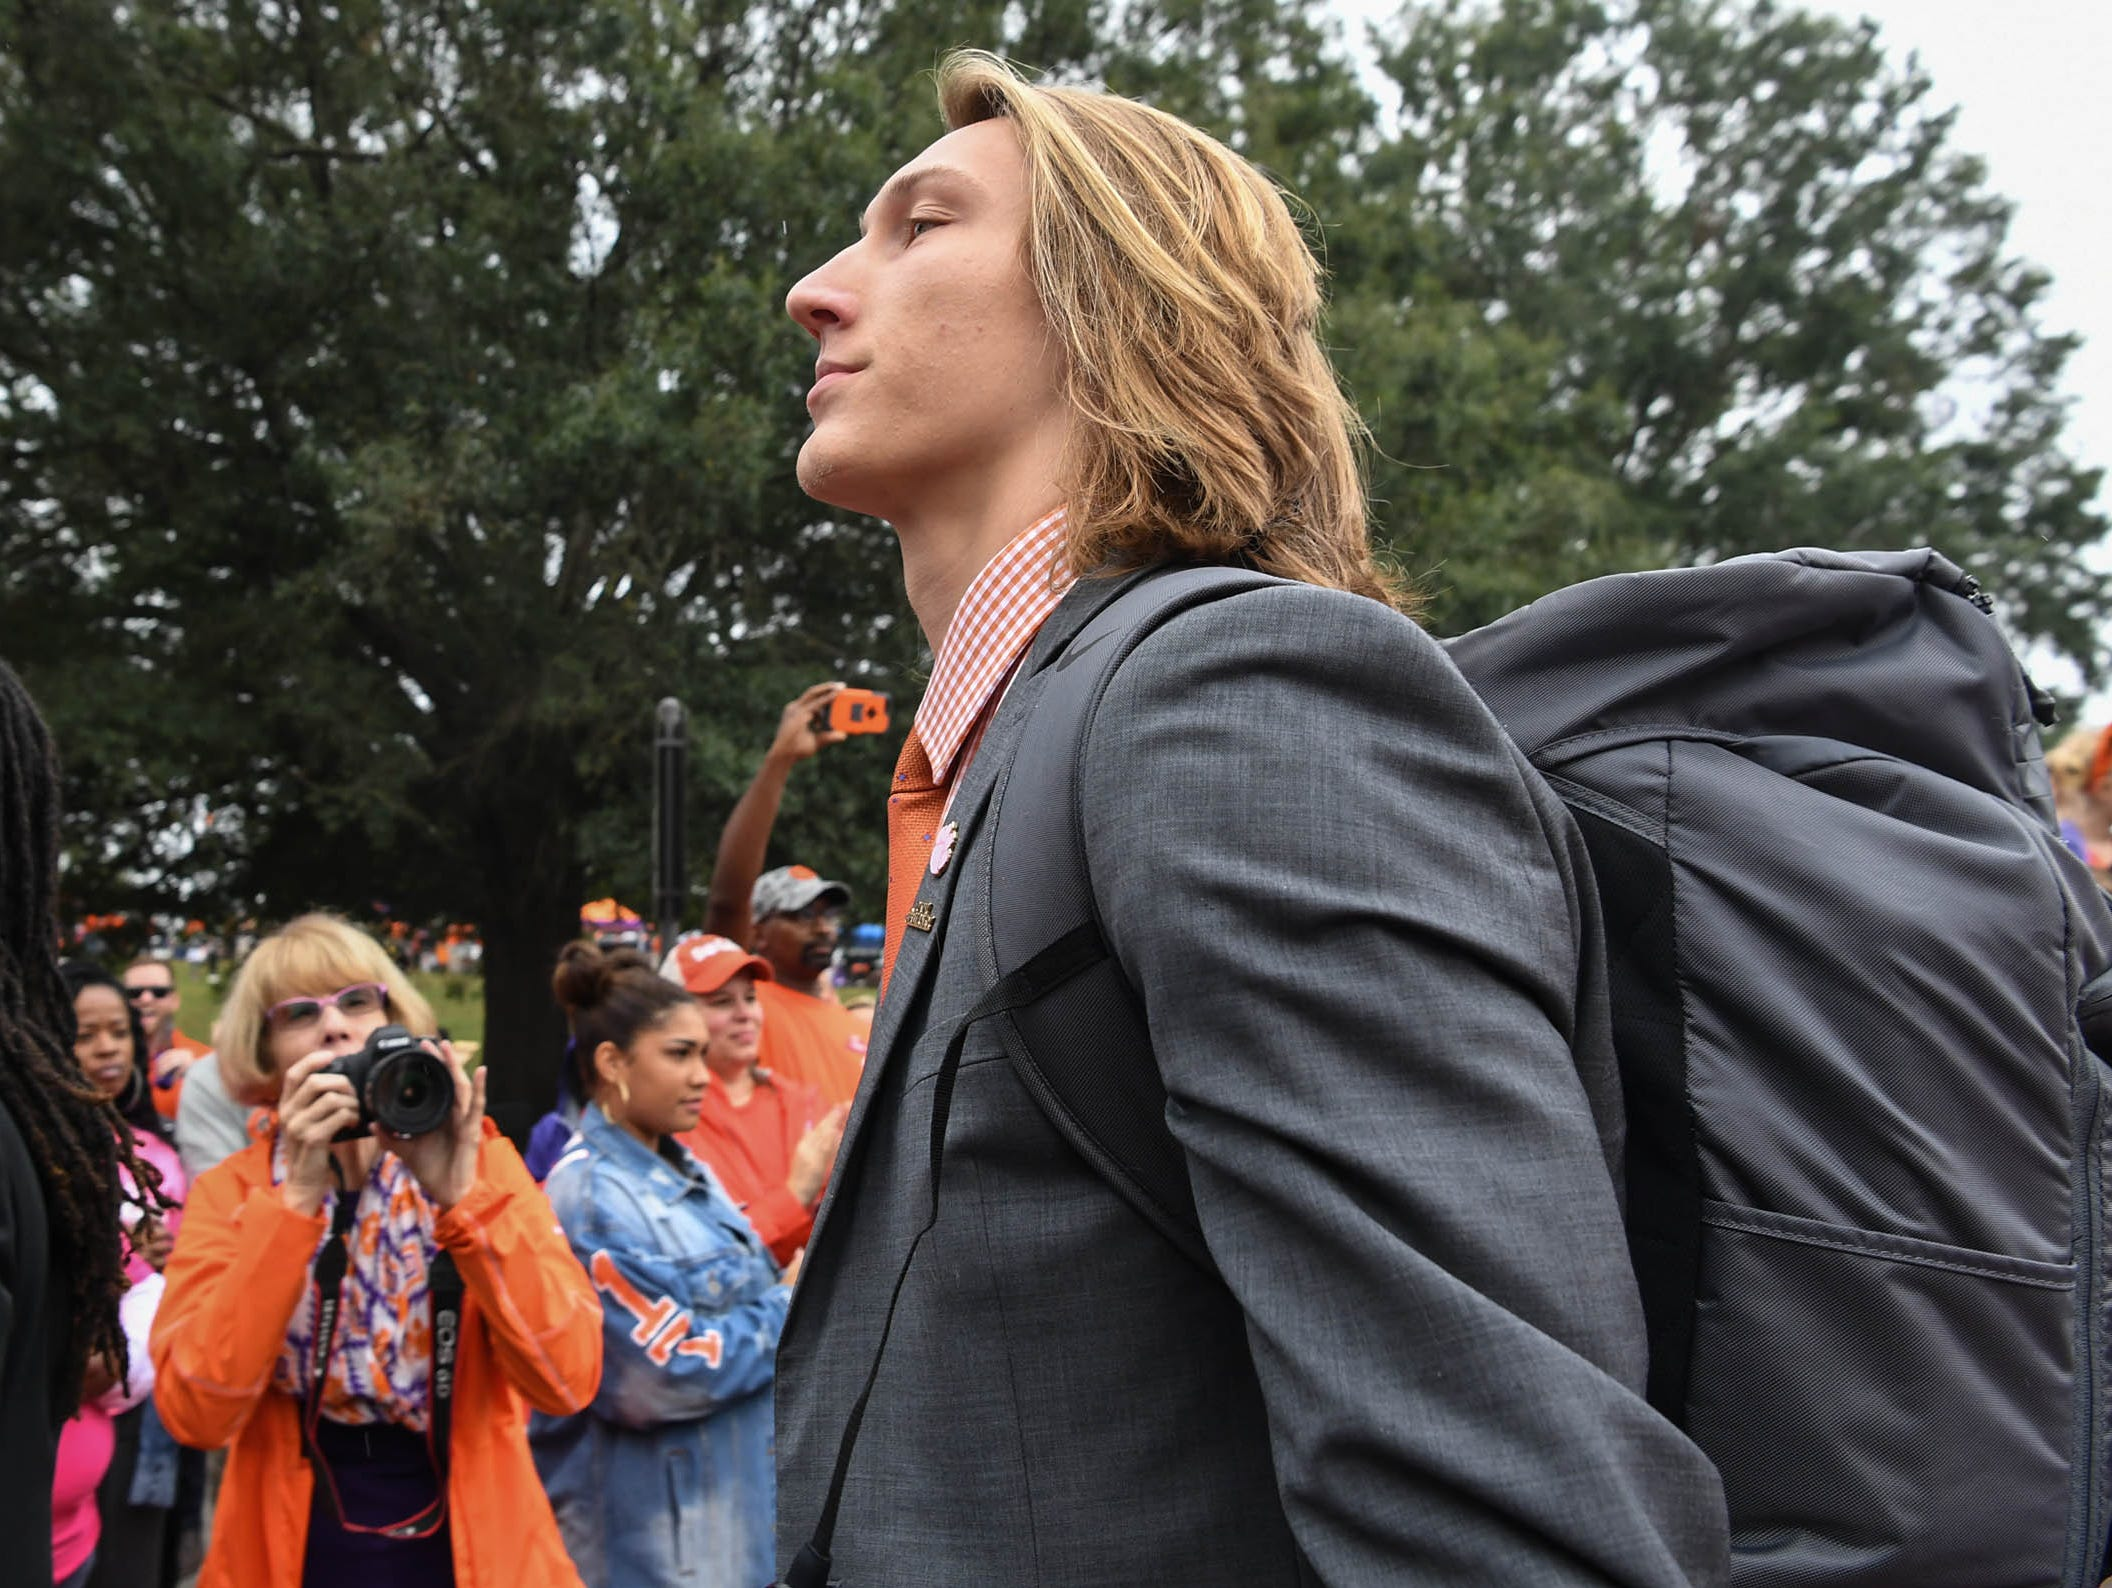 Clemson quarterback Trevor Lawrence walks by fans during Tiger Walk before the game in Memorial Stadium on Saturday, October 20, 2018.